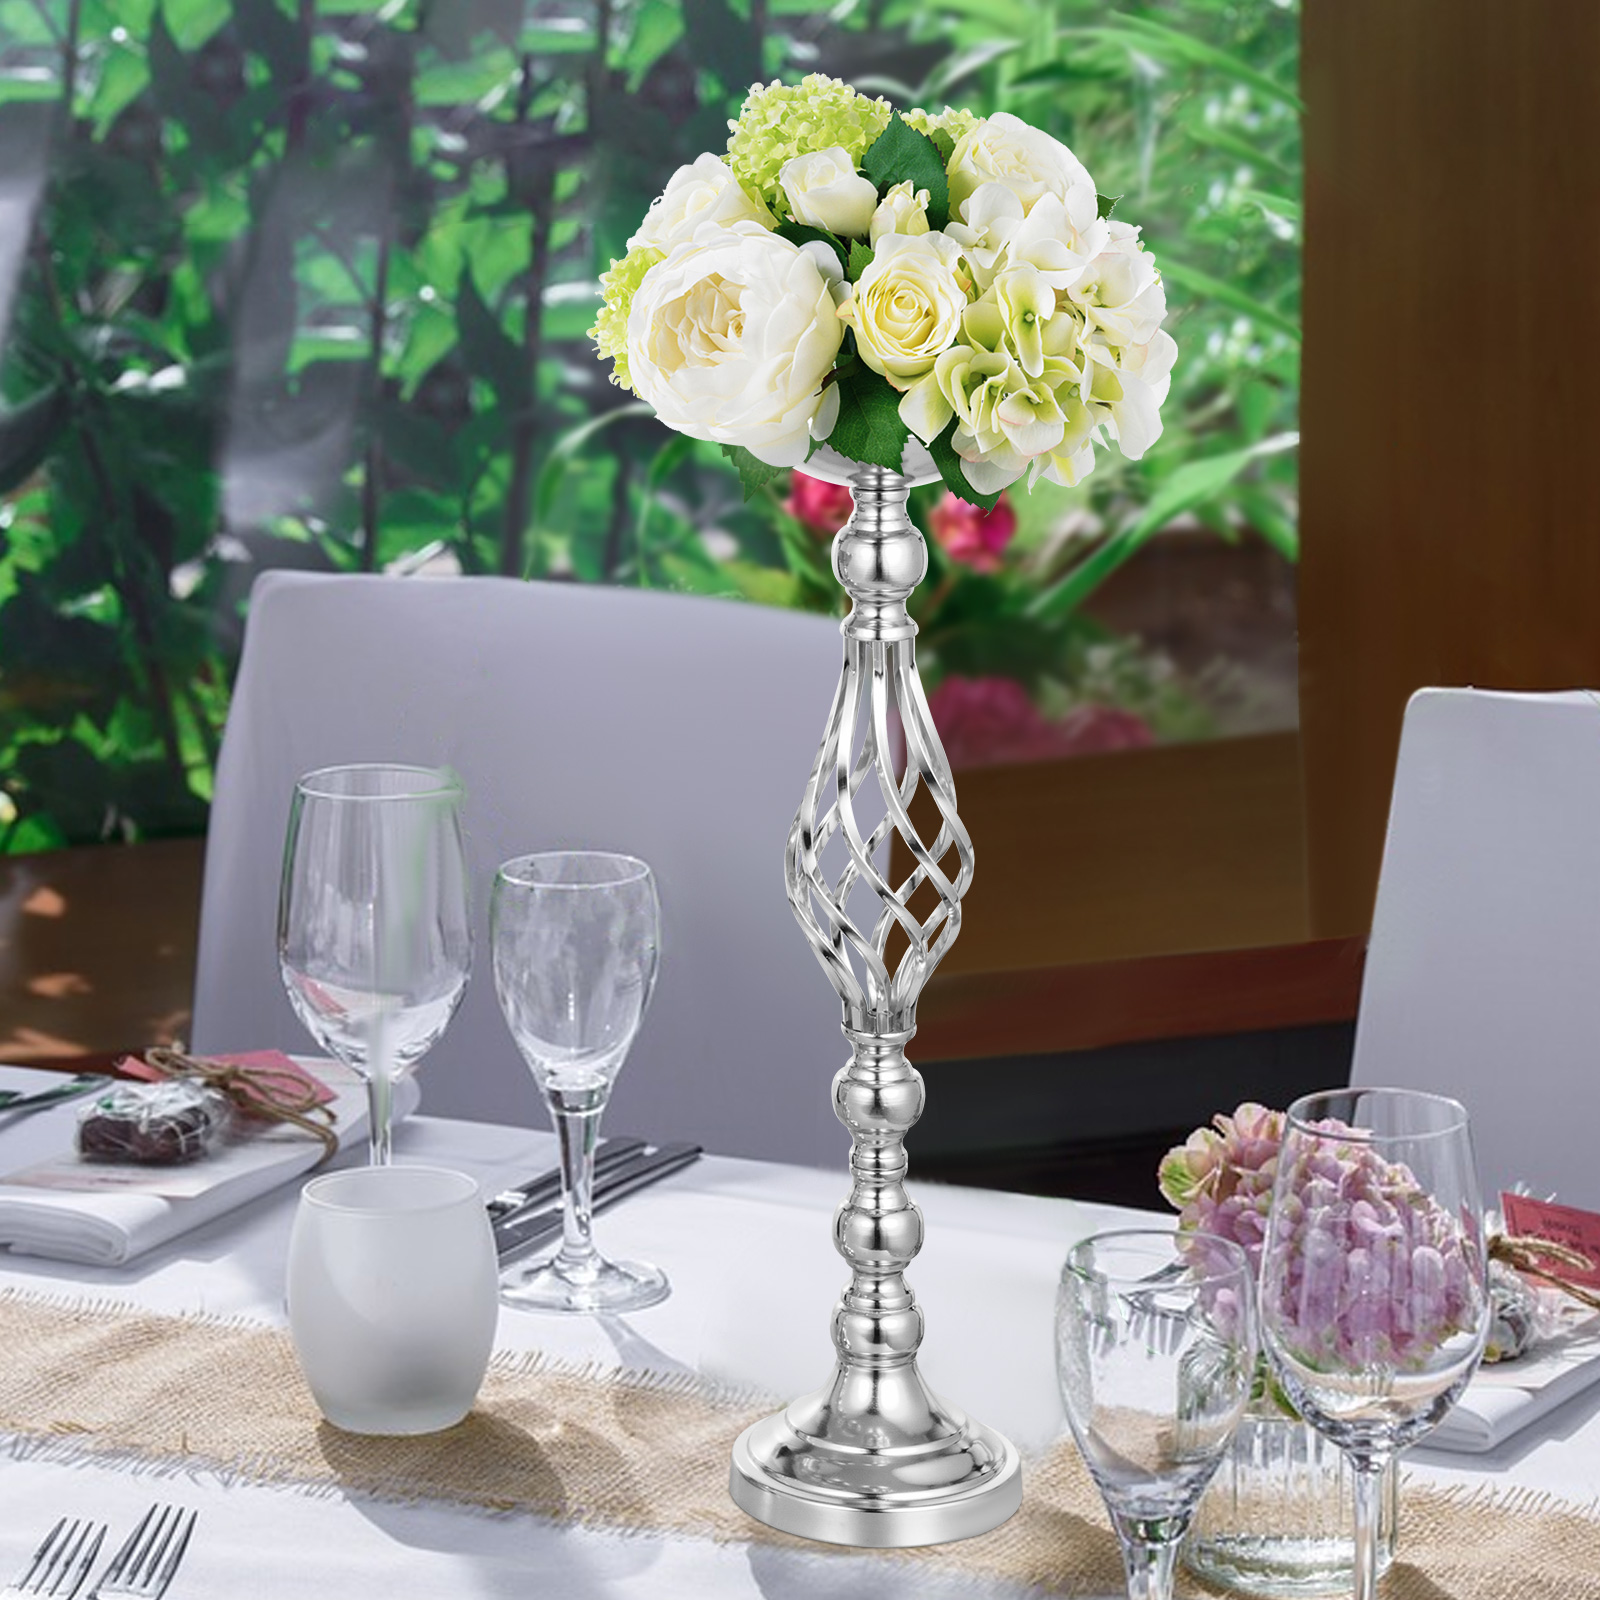 Flower-Rack-for-Wedding-Metal-Candle-Stand-4-11pcs-Centerpiece-Flower-Vase thumbnail 21